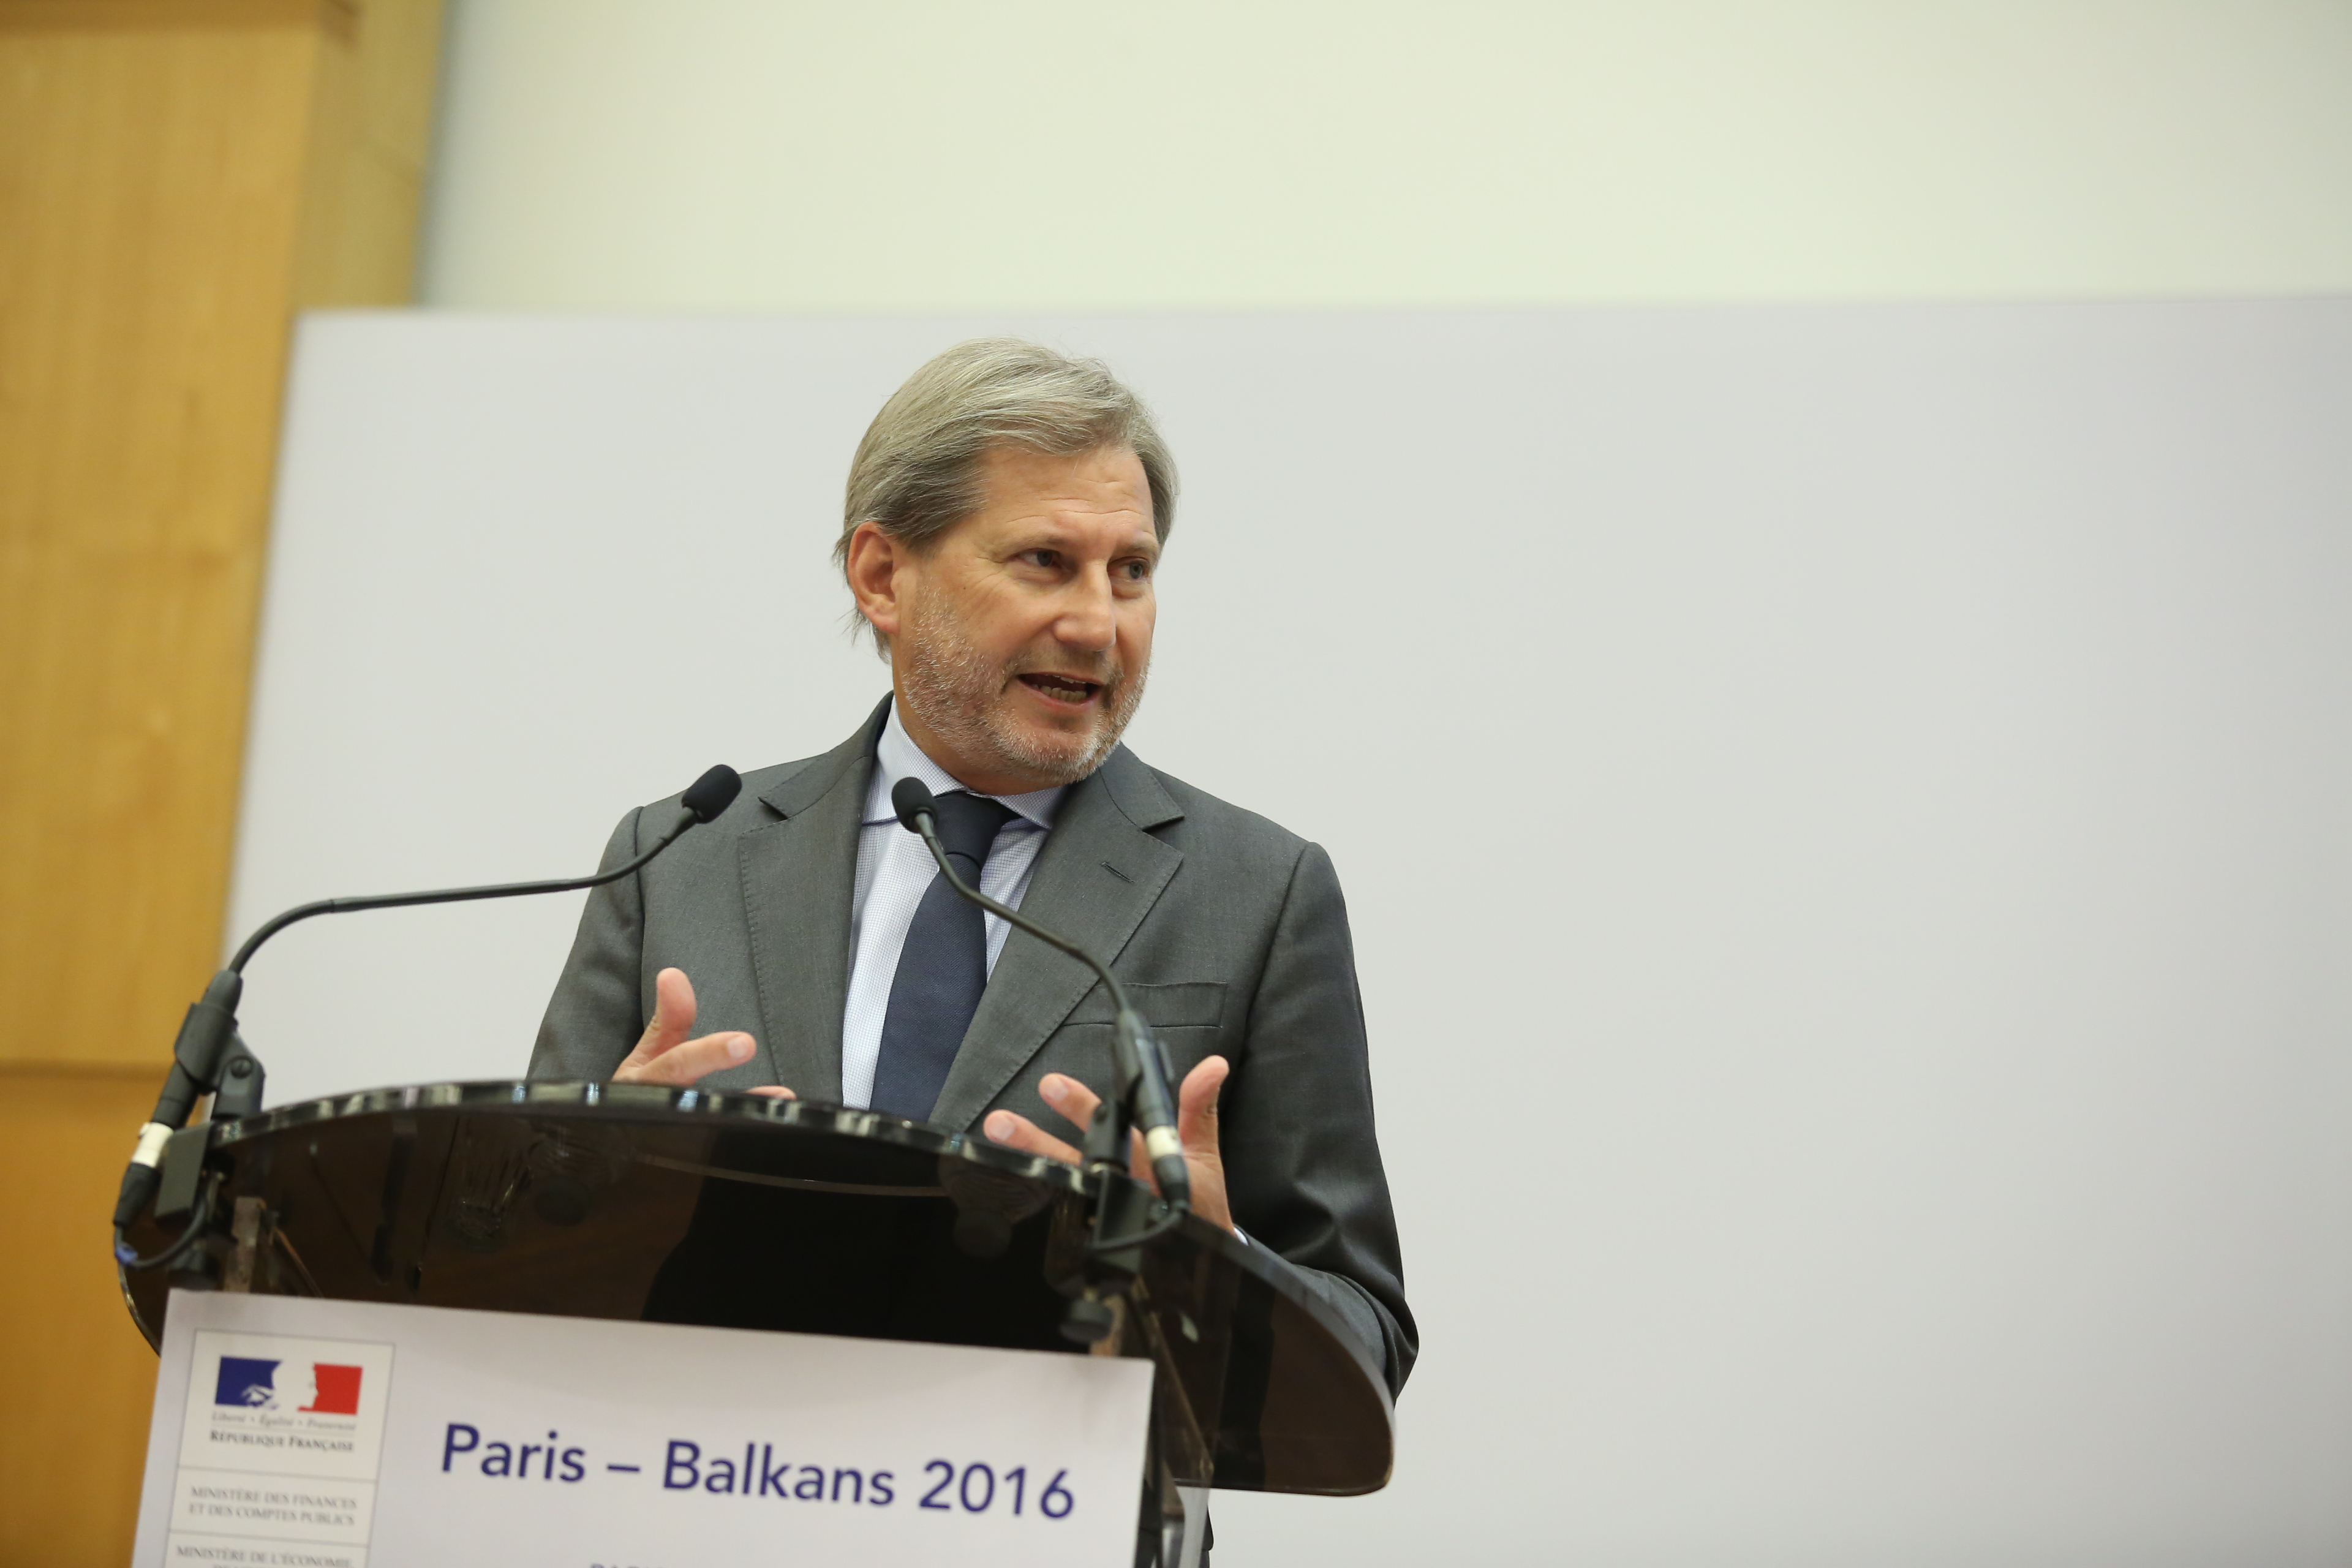 Johannes Hahn, takes part in the Western Balkan Summit at the French conference center at Bercy in Paris, France, on 4th of july, 2016.